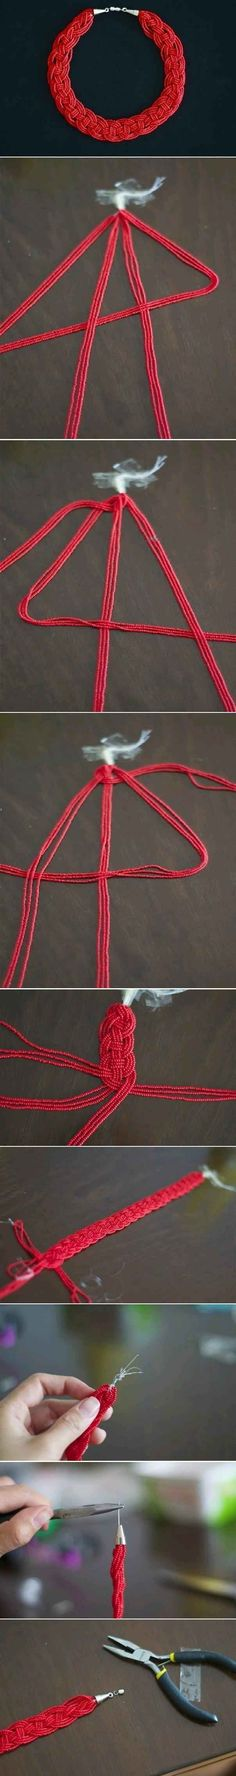 Four Strand Braid | 24 Super Easy DIY Bracelets